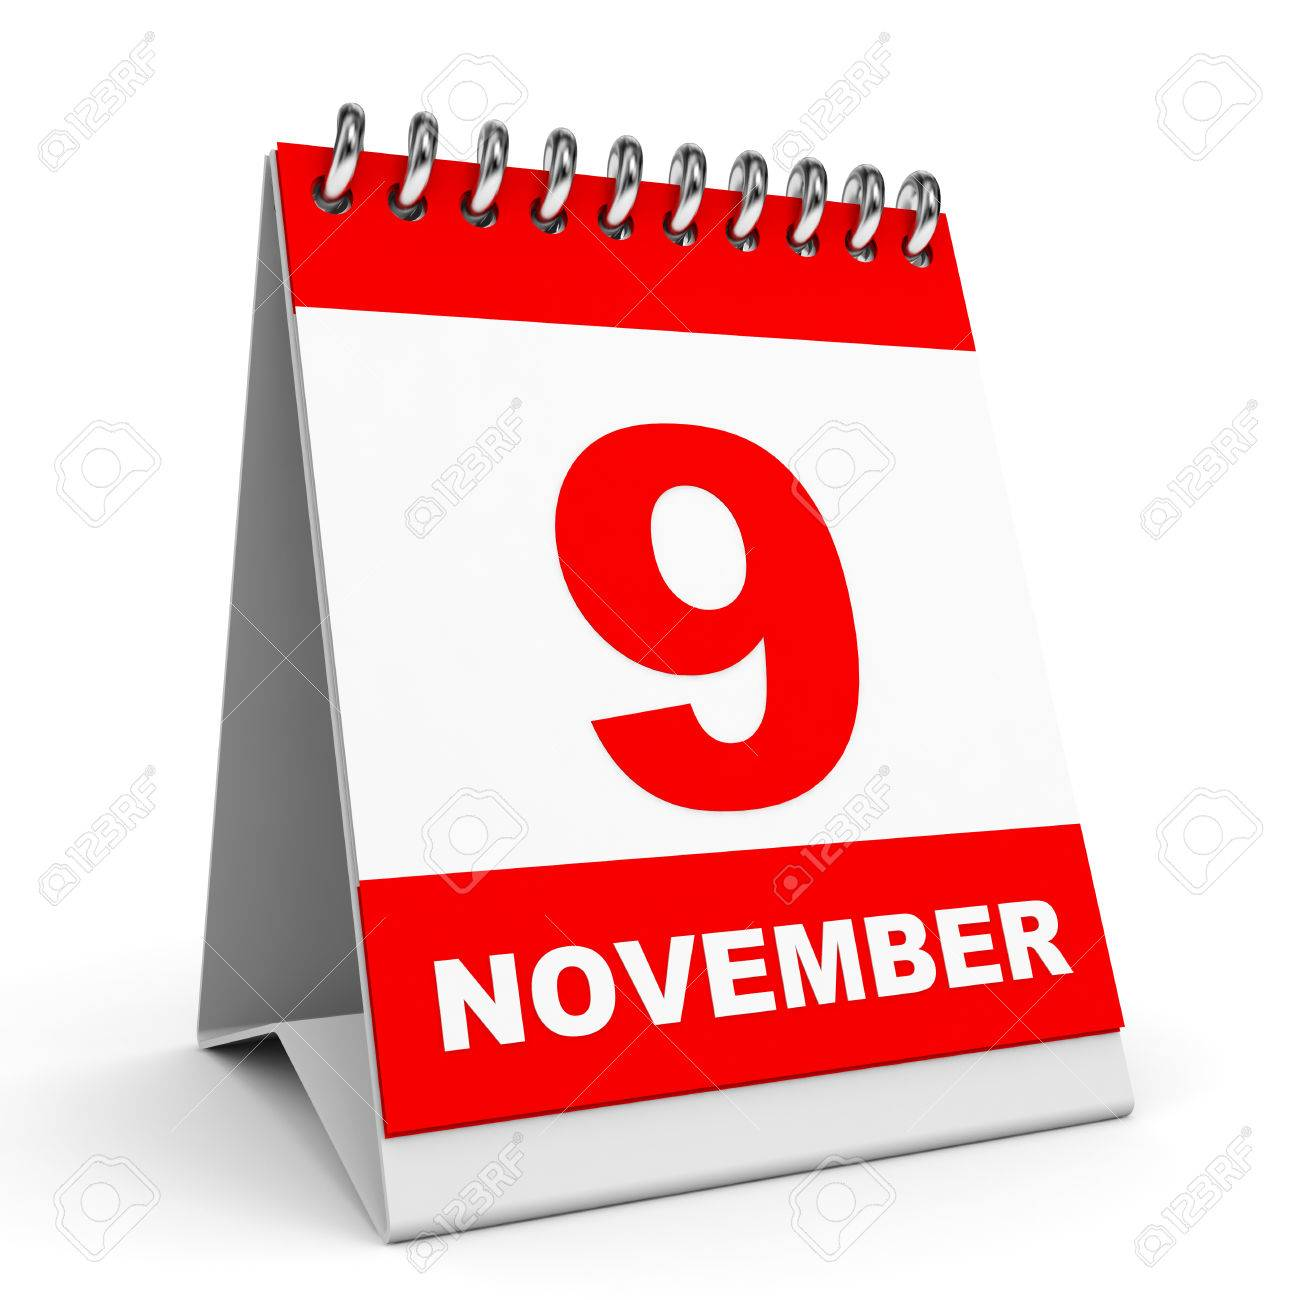 Image result for calendar pages November 9